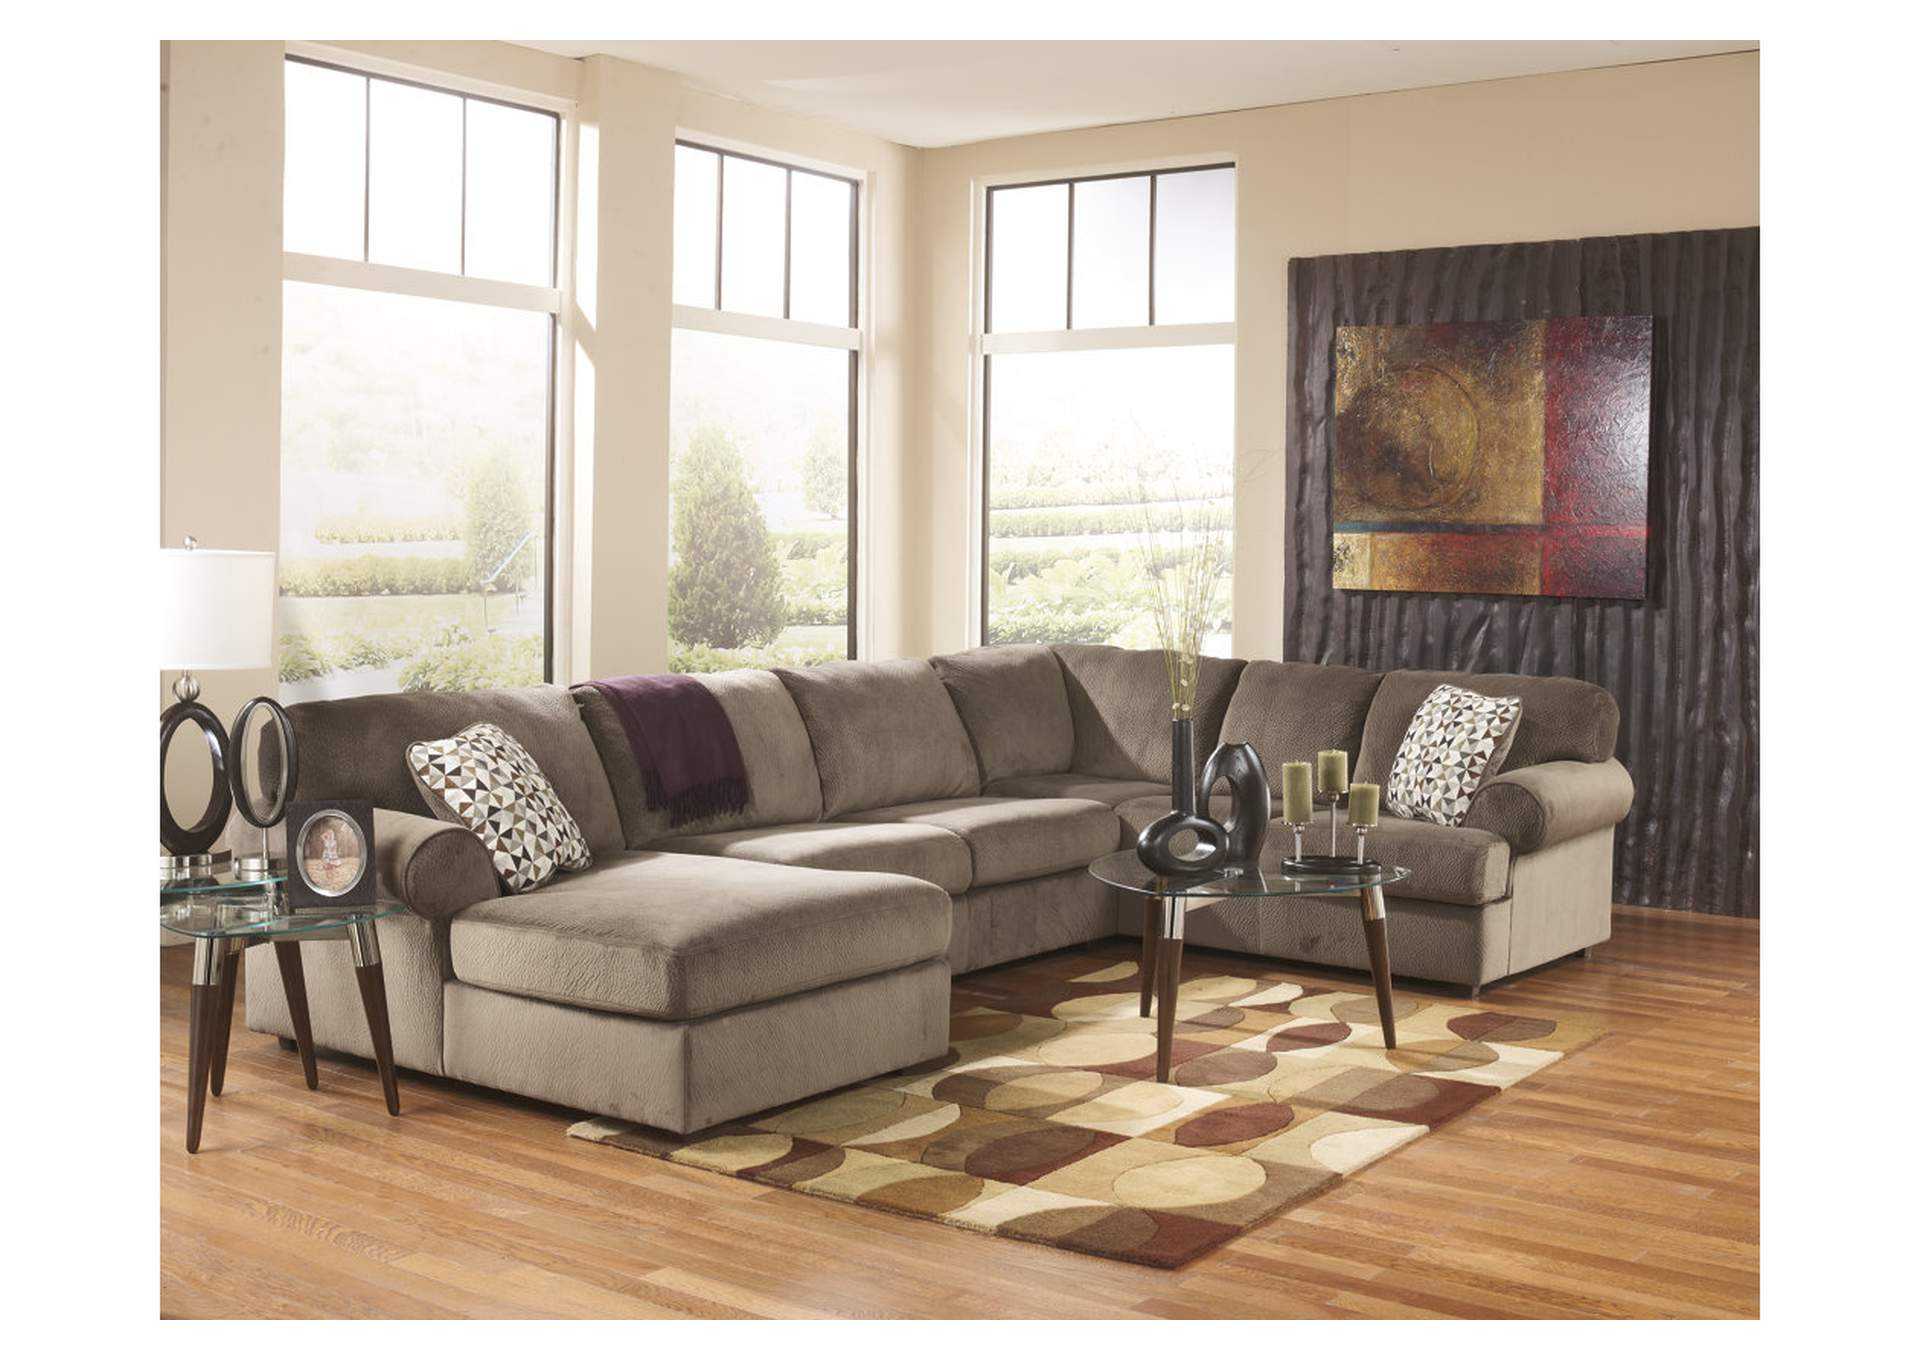 Jessa Place Dune LAF Chaise Sectional,Signature Design By Ashley